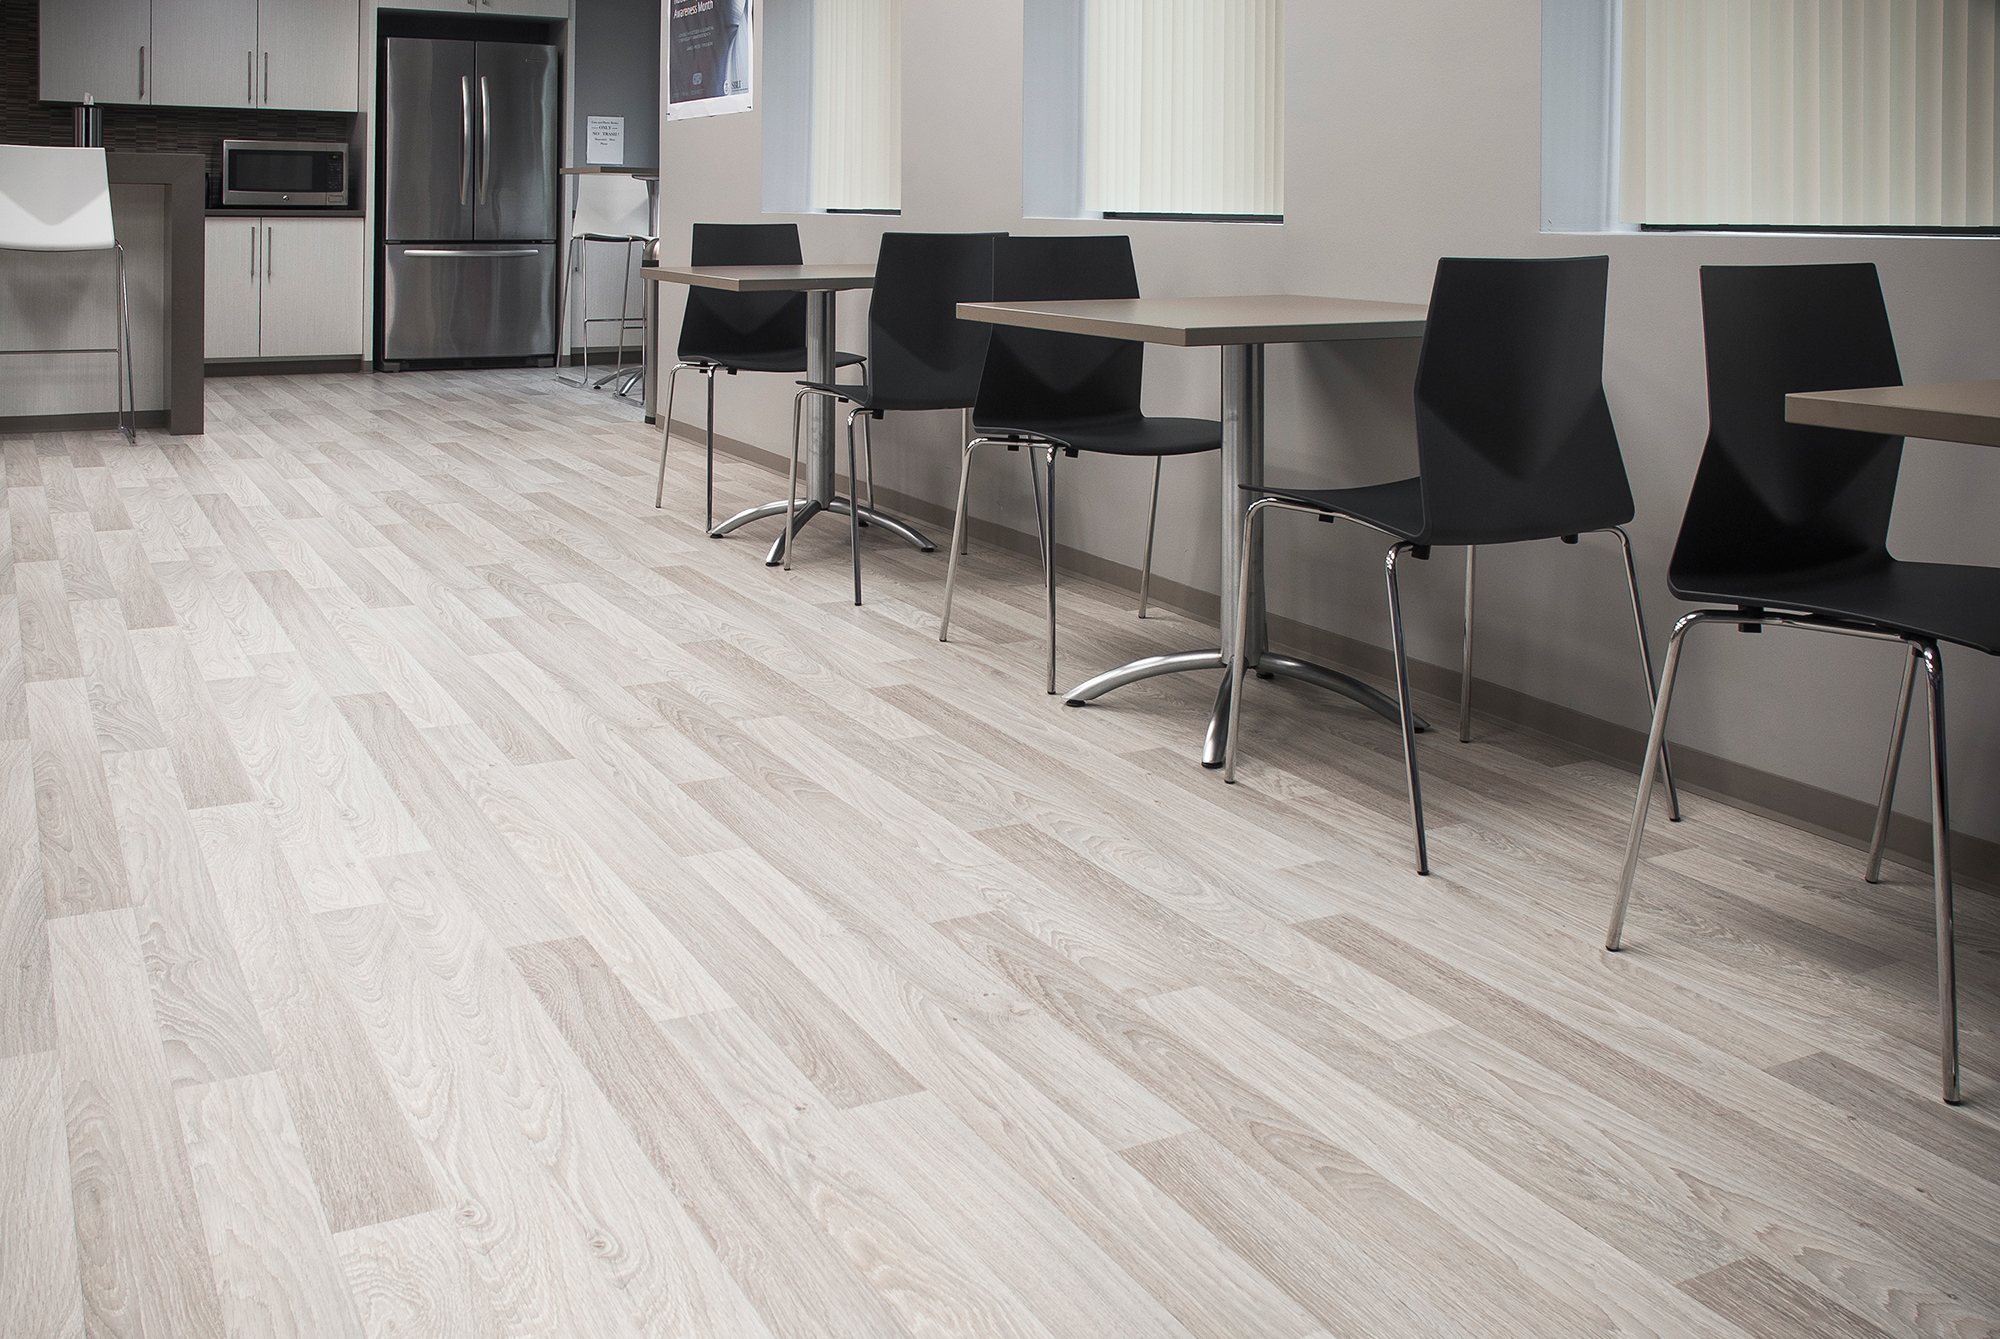 Durable Commercial Flooring Made From Natural Materials